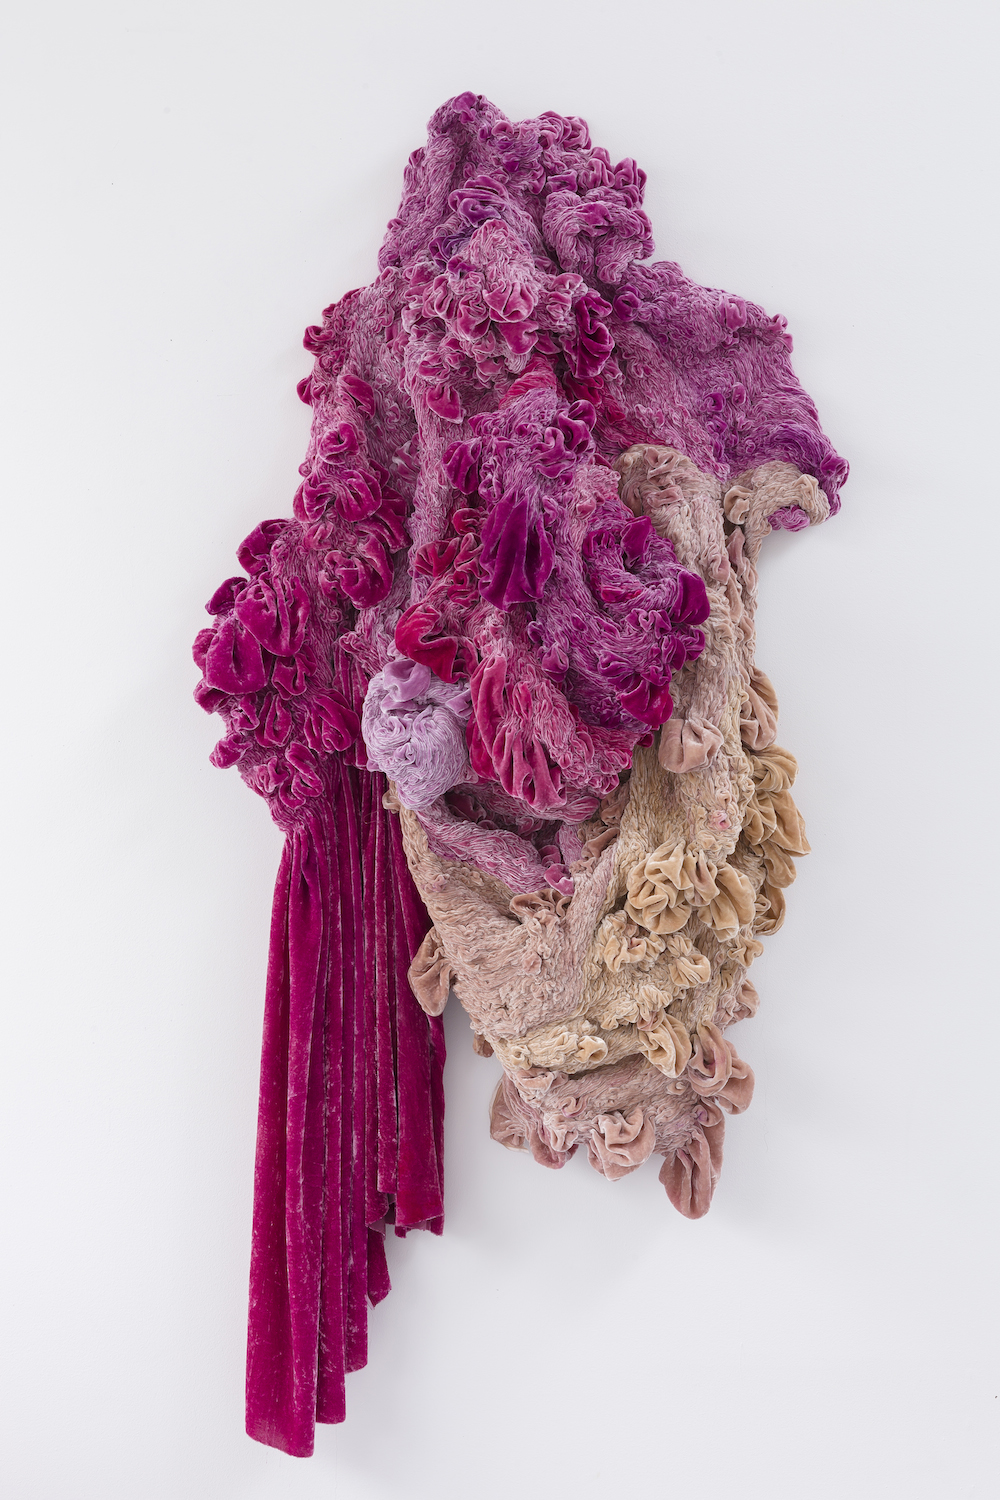 """Hanne Friis """"Phases"""", 2017 (160 x 75 x 25 cm, hand dyed silk velvet from cochenille and cones, sewn by hand). Photo: Øystein Thorvaldsen."""